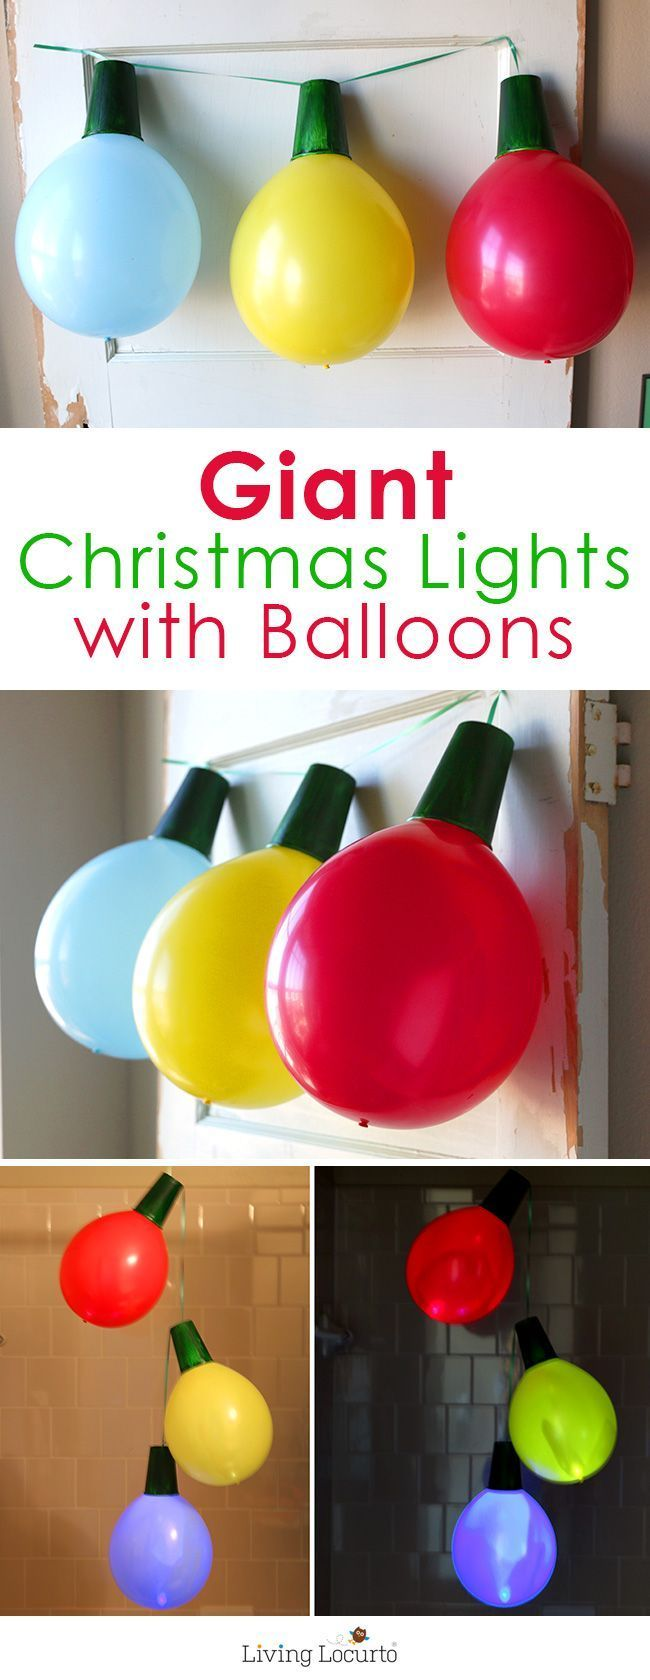 Whether hosting a holiday party, Tacky Christmas party or just want to go BIG… these Giant Balloon Christmas Lights and Ornaments are perfect decorations!                                                                                                                                                                                 More